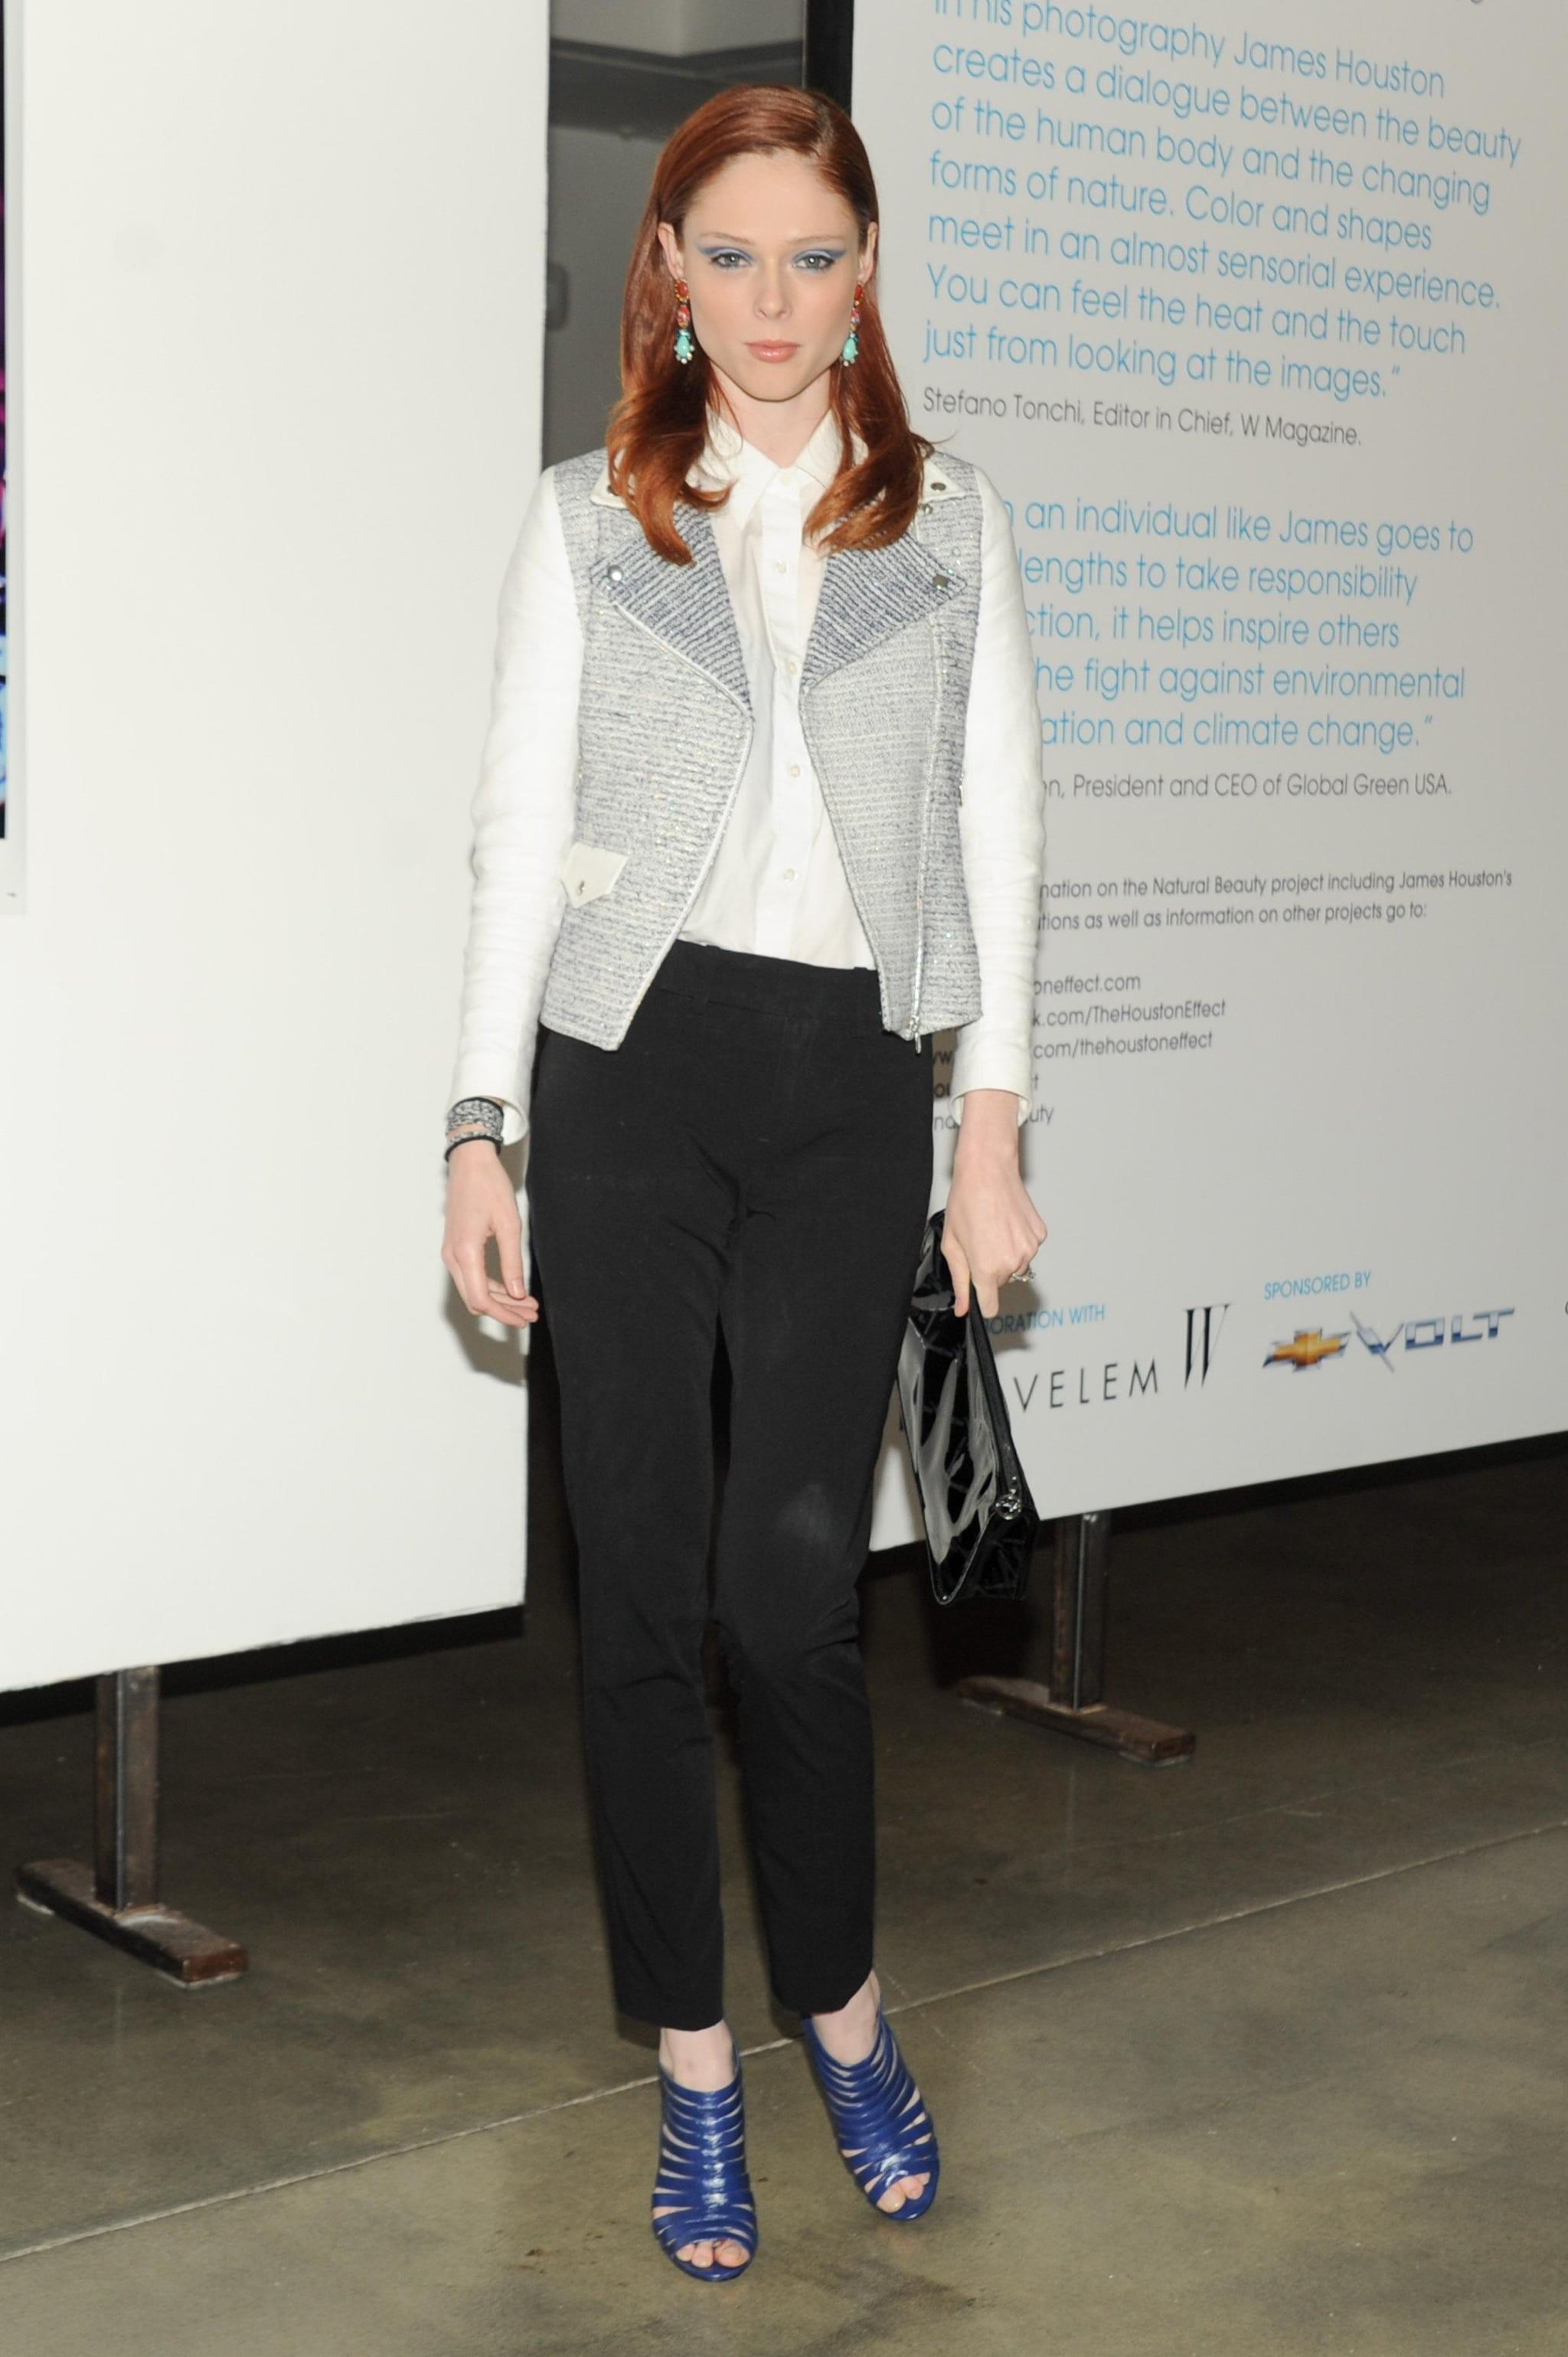 Coco Rocha at the Natural Beauty book launch in New York. Source: Neil Rasmus/BFAnyc.com